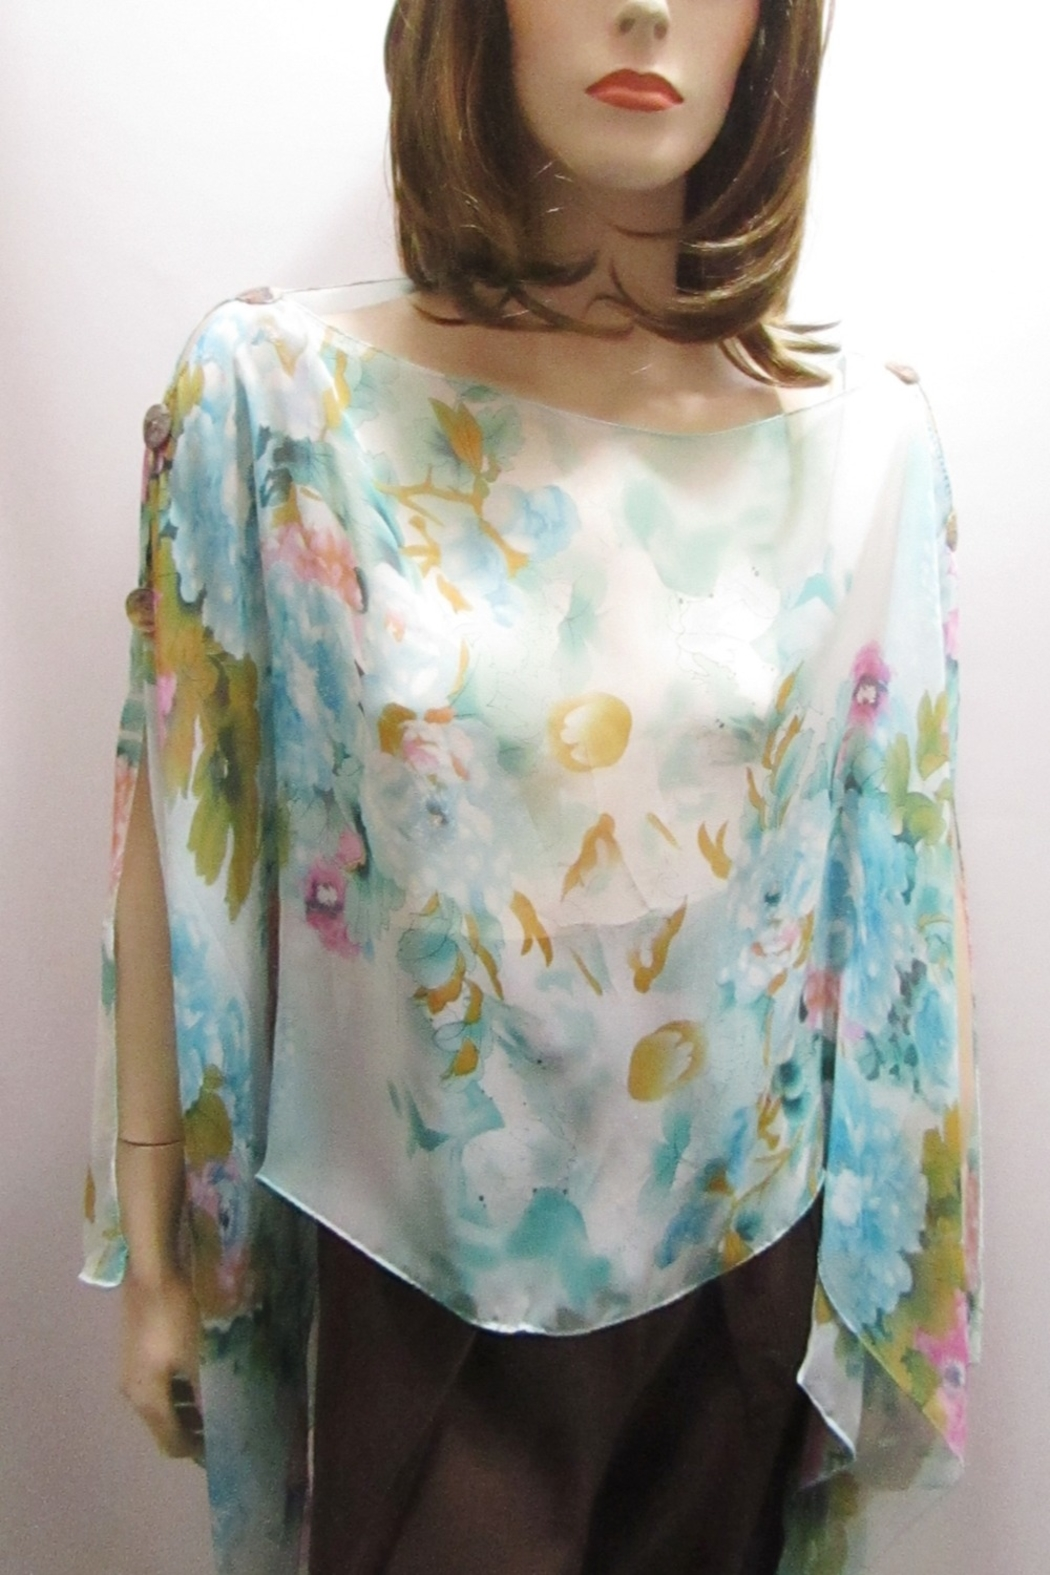 KIMBALS SILKY SHEER PONCHO - Turquoise Floral - Side Cropped Image